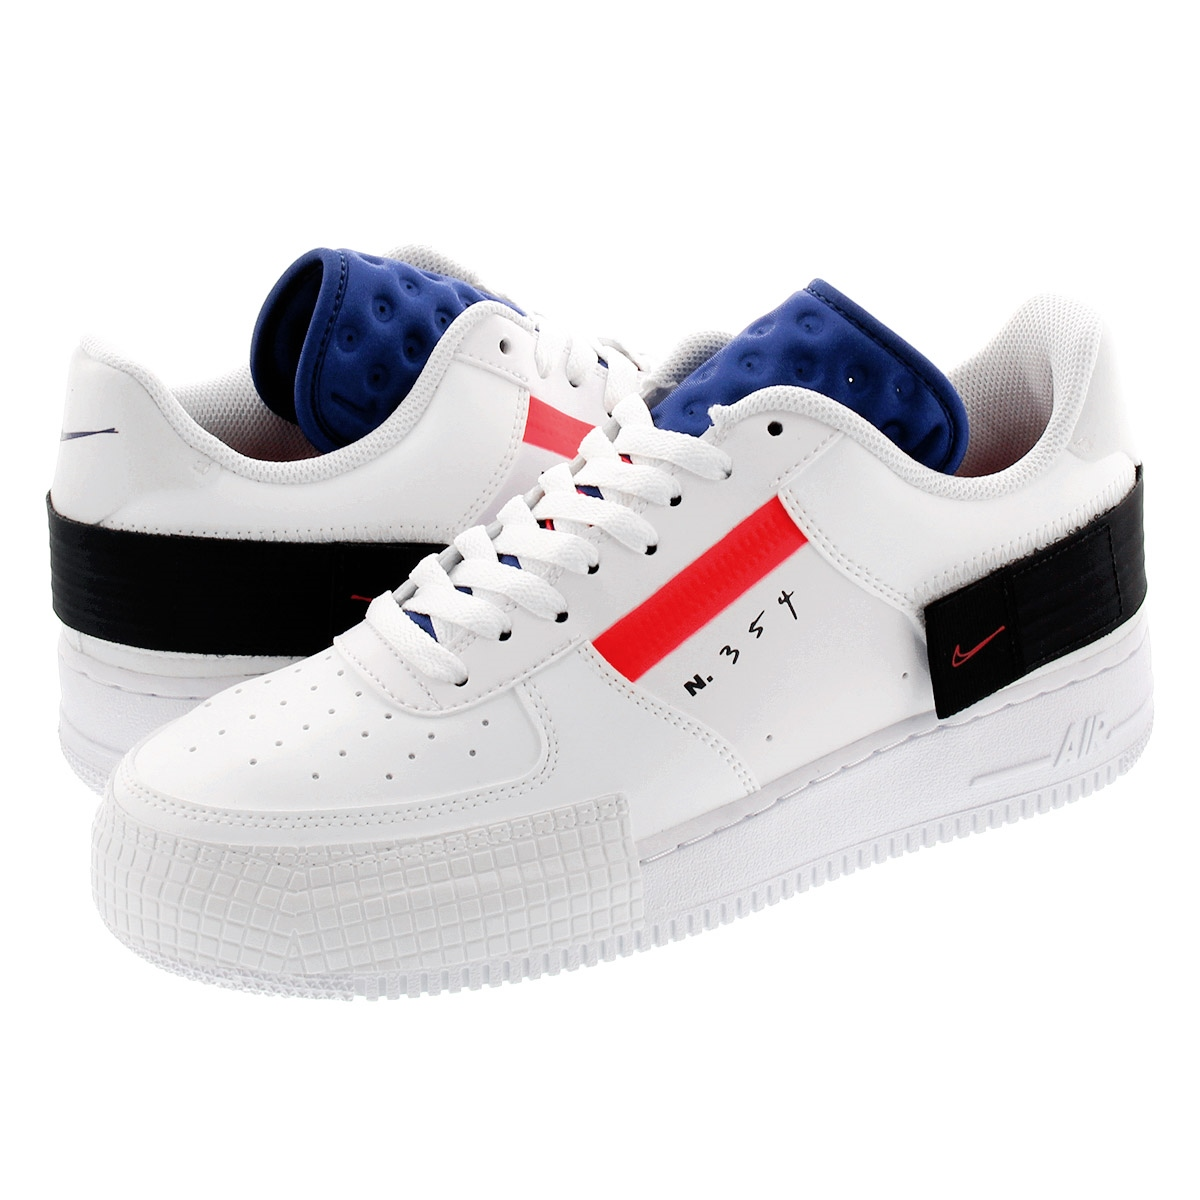 NIKE AIR FORCE 1 TYPE Nike air force one type SUMMIT WHITERED ORBITWHITEBLACK ci0054 100